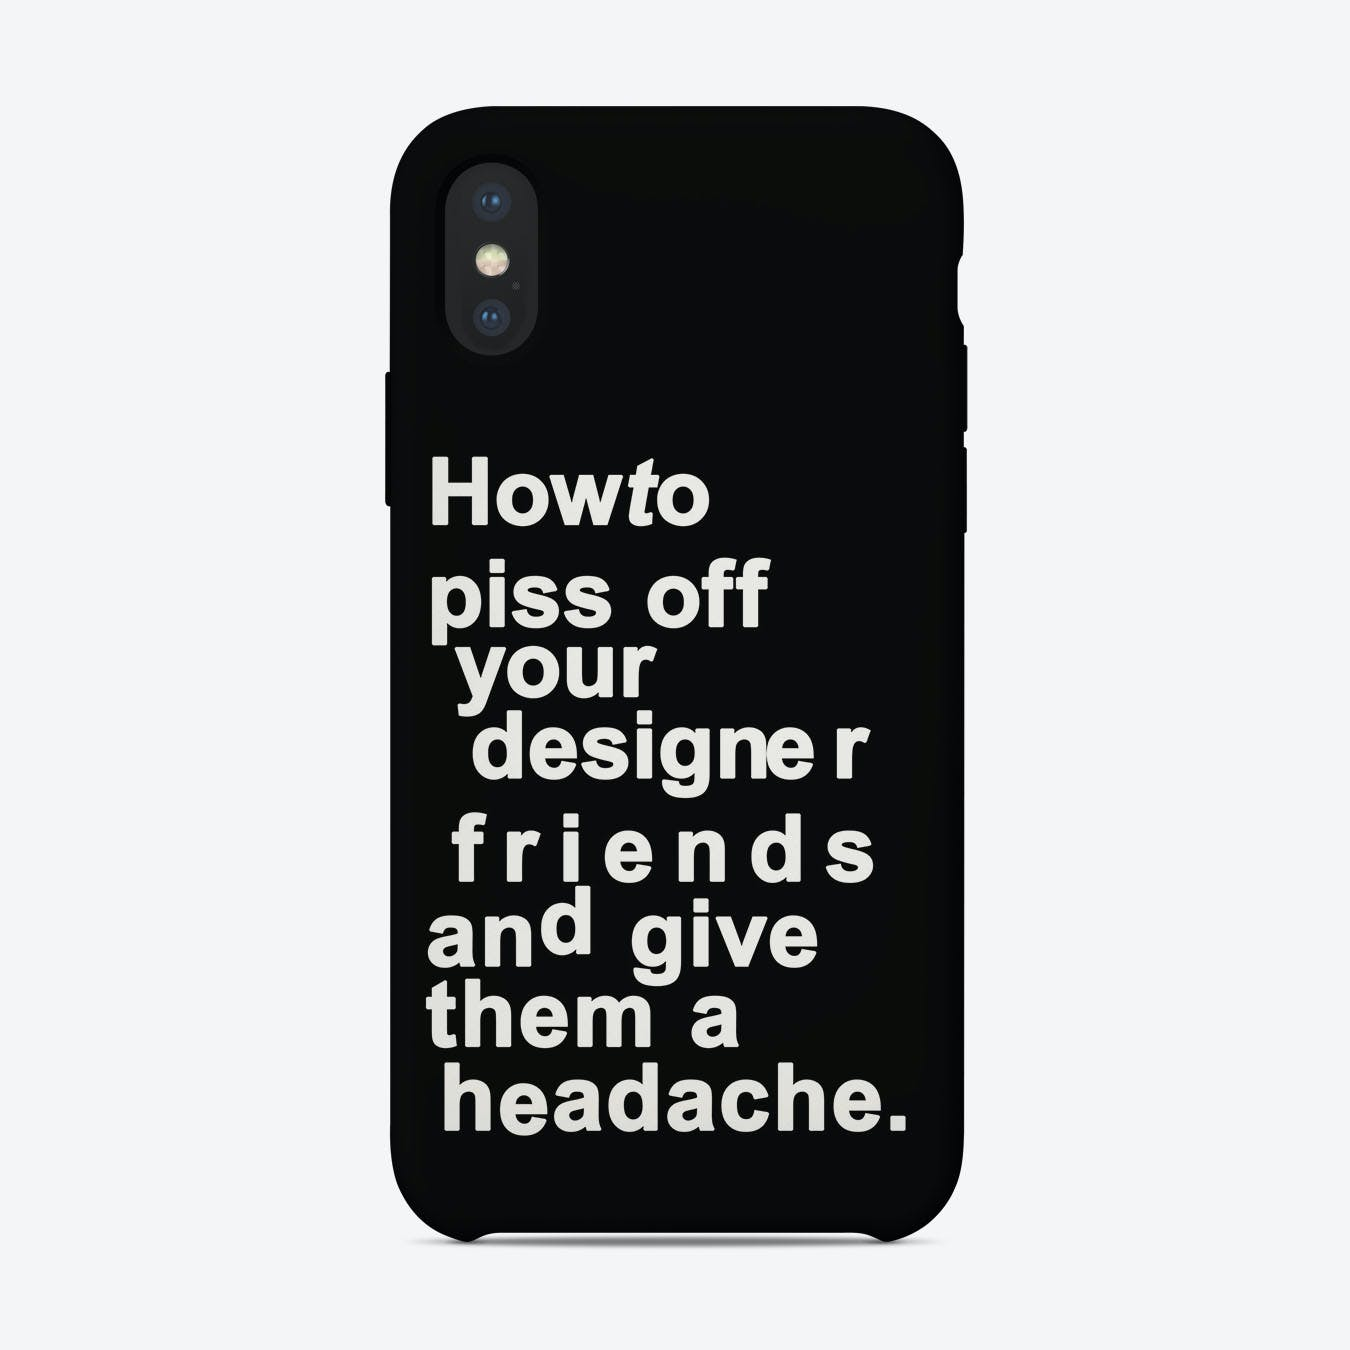 The Headache Black iPhone Case